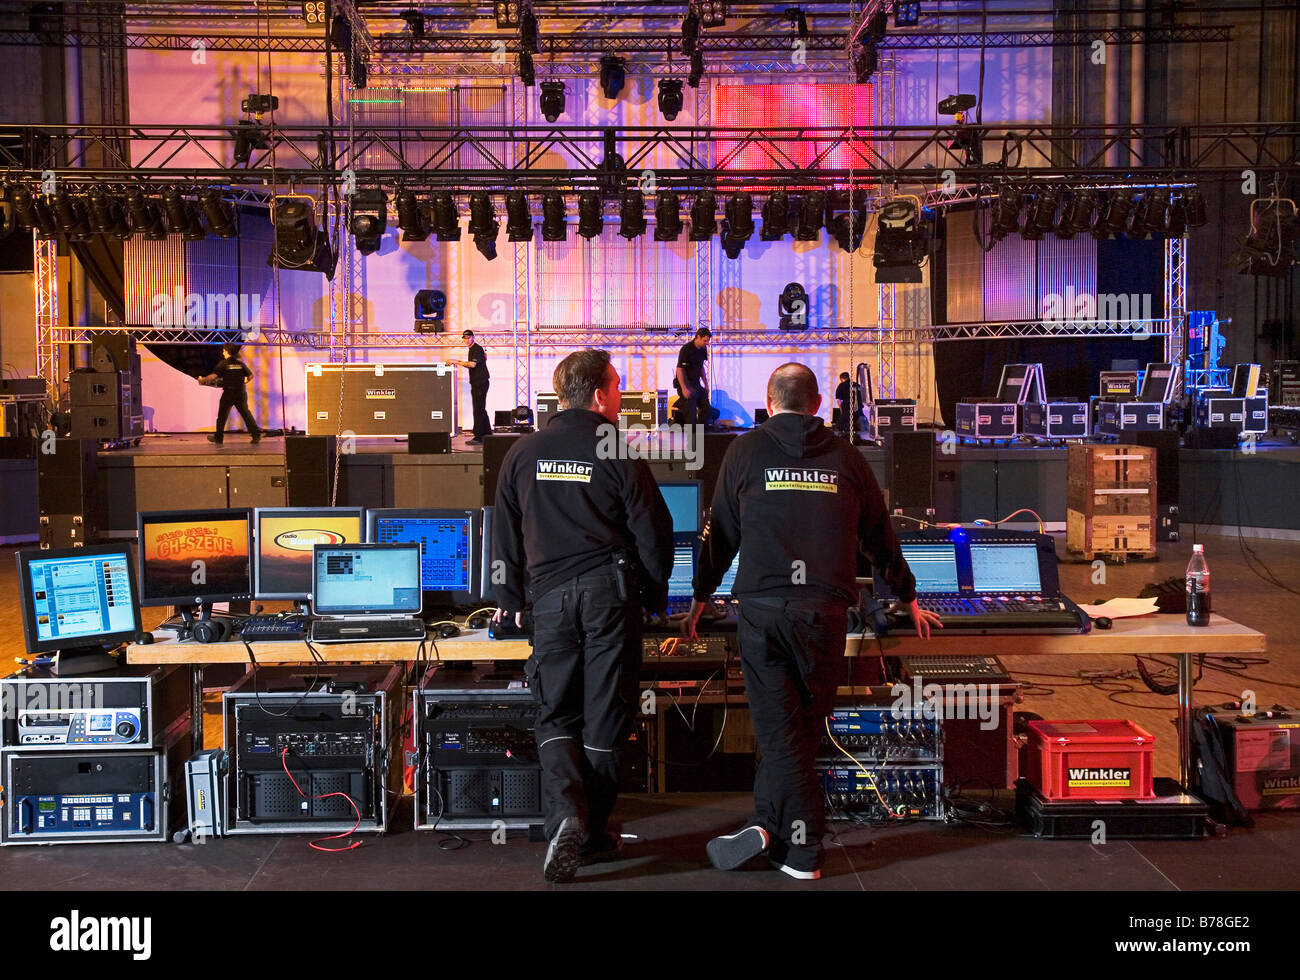 Employee of the event technology company, Winkler, during the setting up of sound and light equipment on the stage - Stock Image